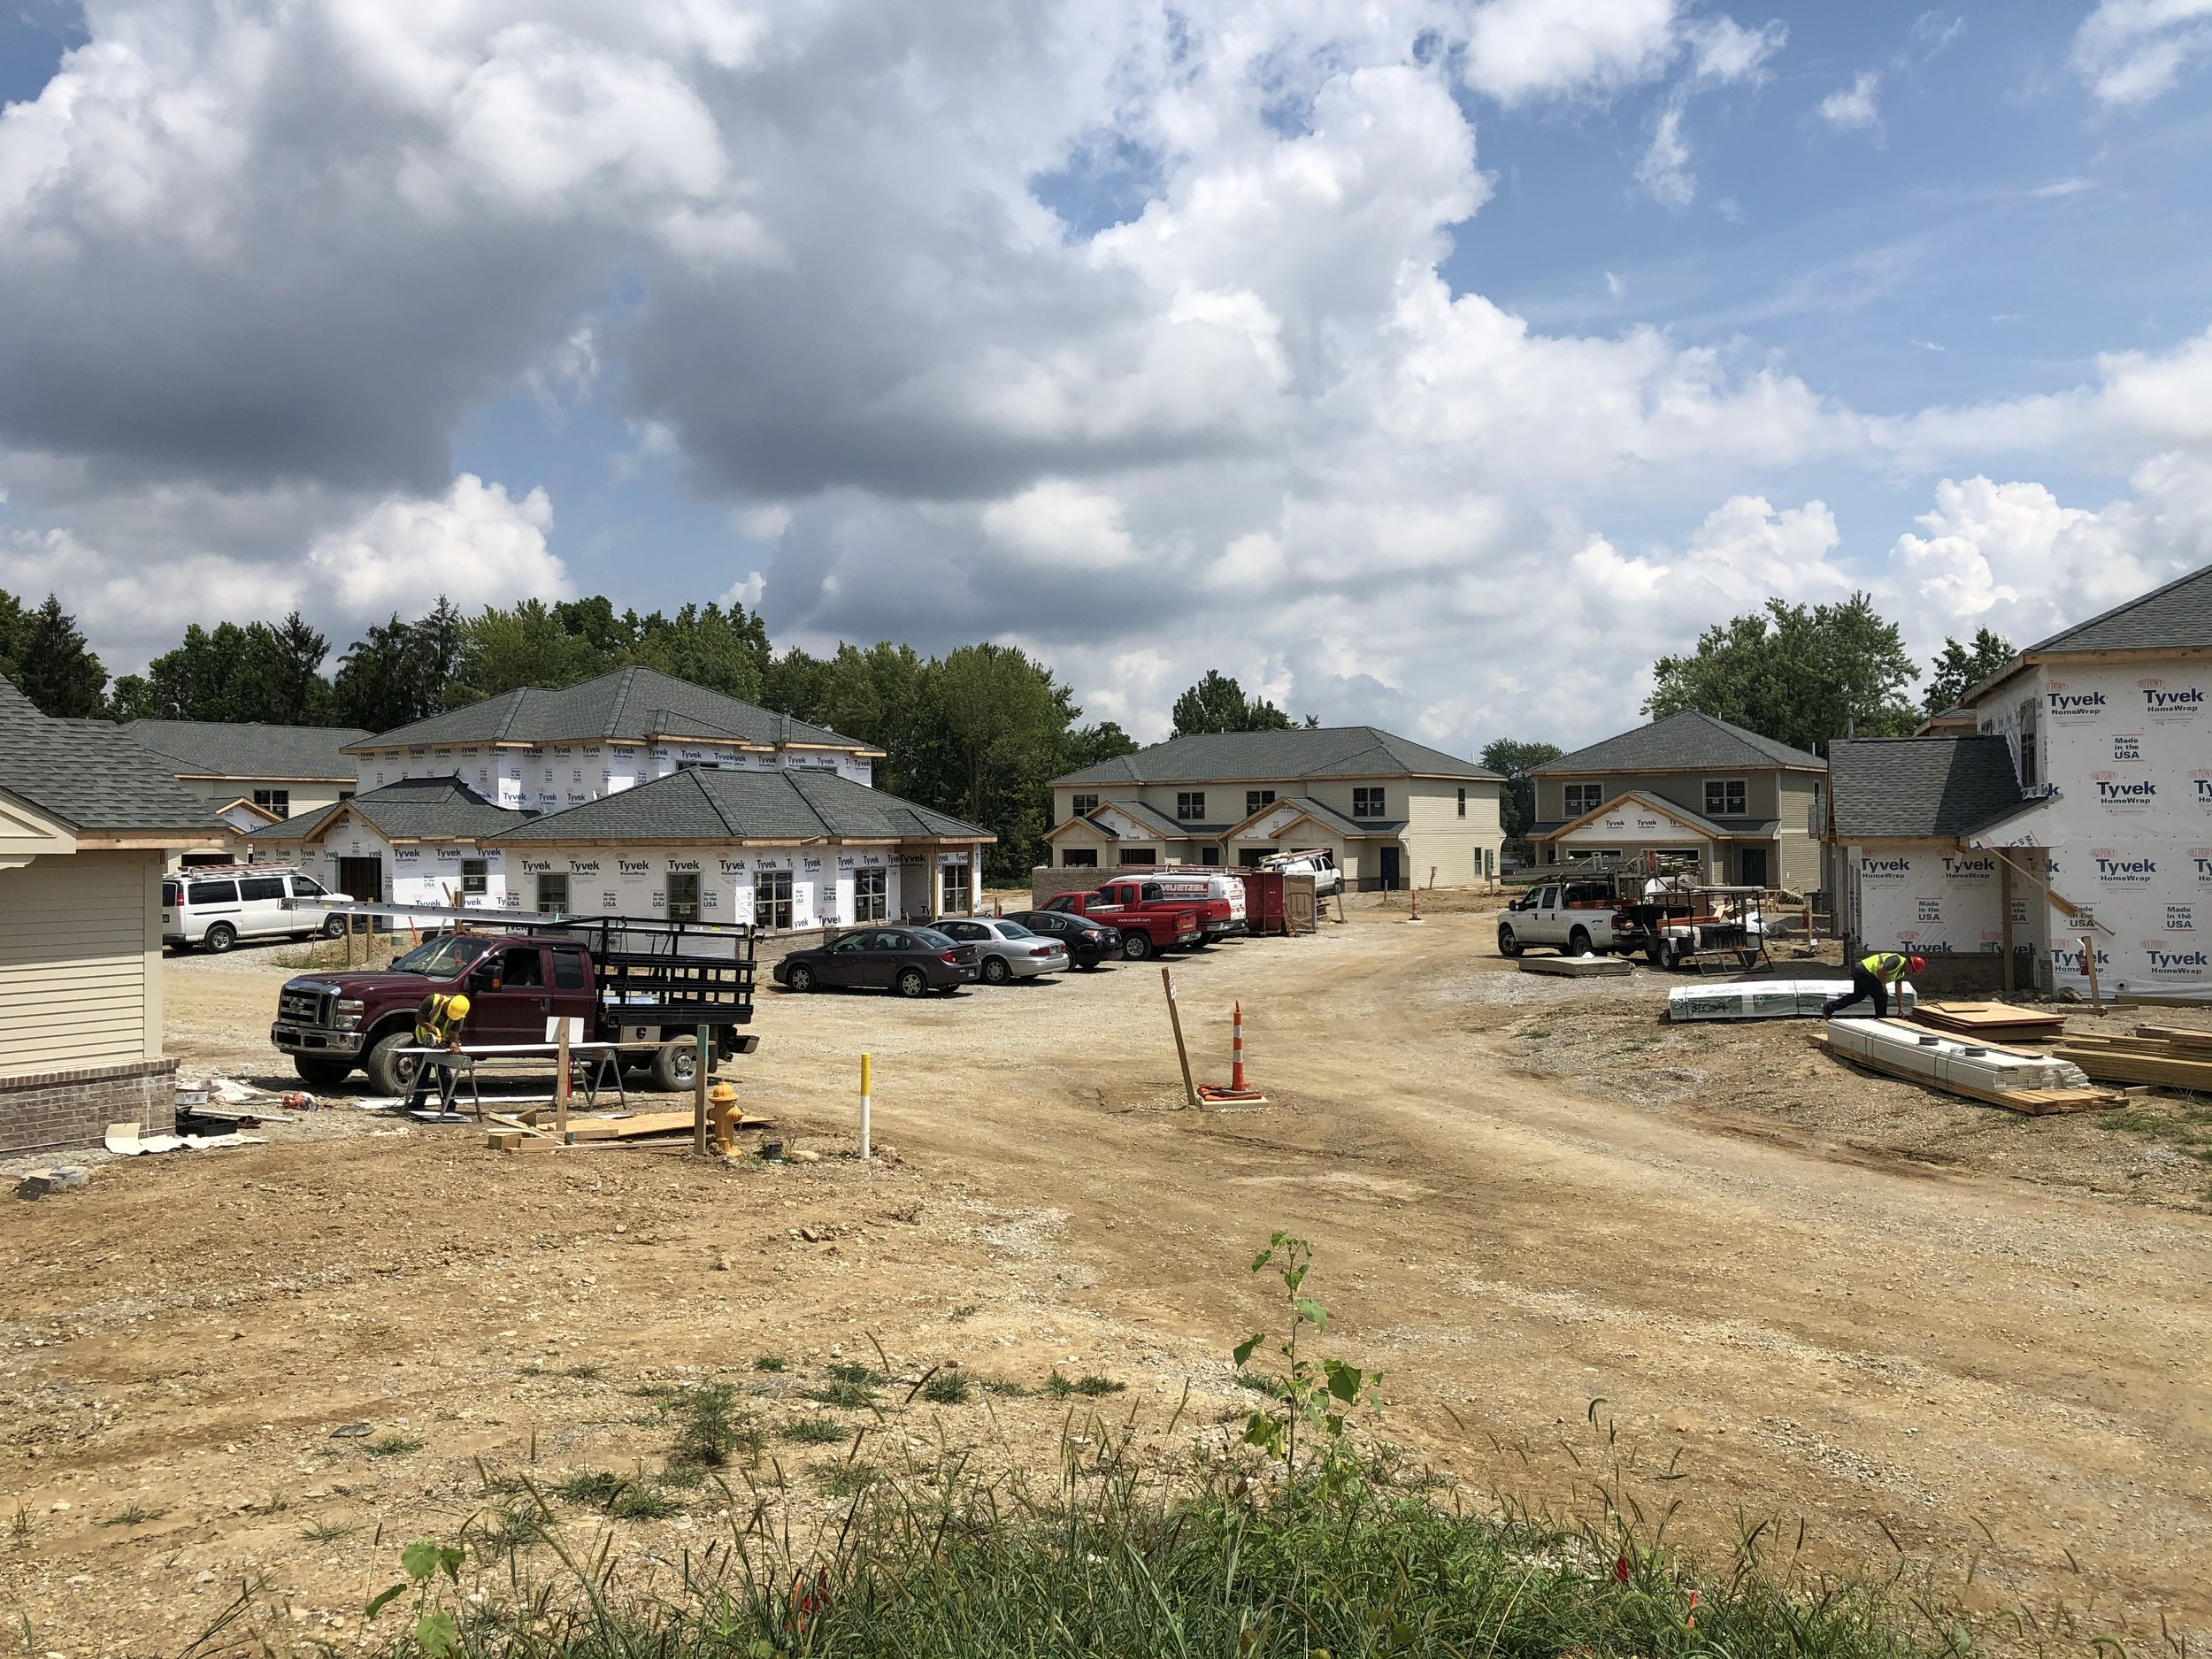 Construction of Blacklick Crossing in Reynoldsburg is coming along, with completion of the 30-unit Homeport development expected the beginning of 2020. Some residents could begin moving in as early as November.